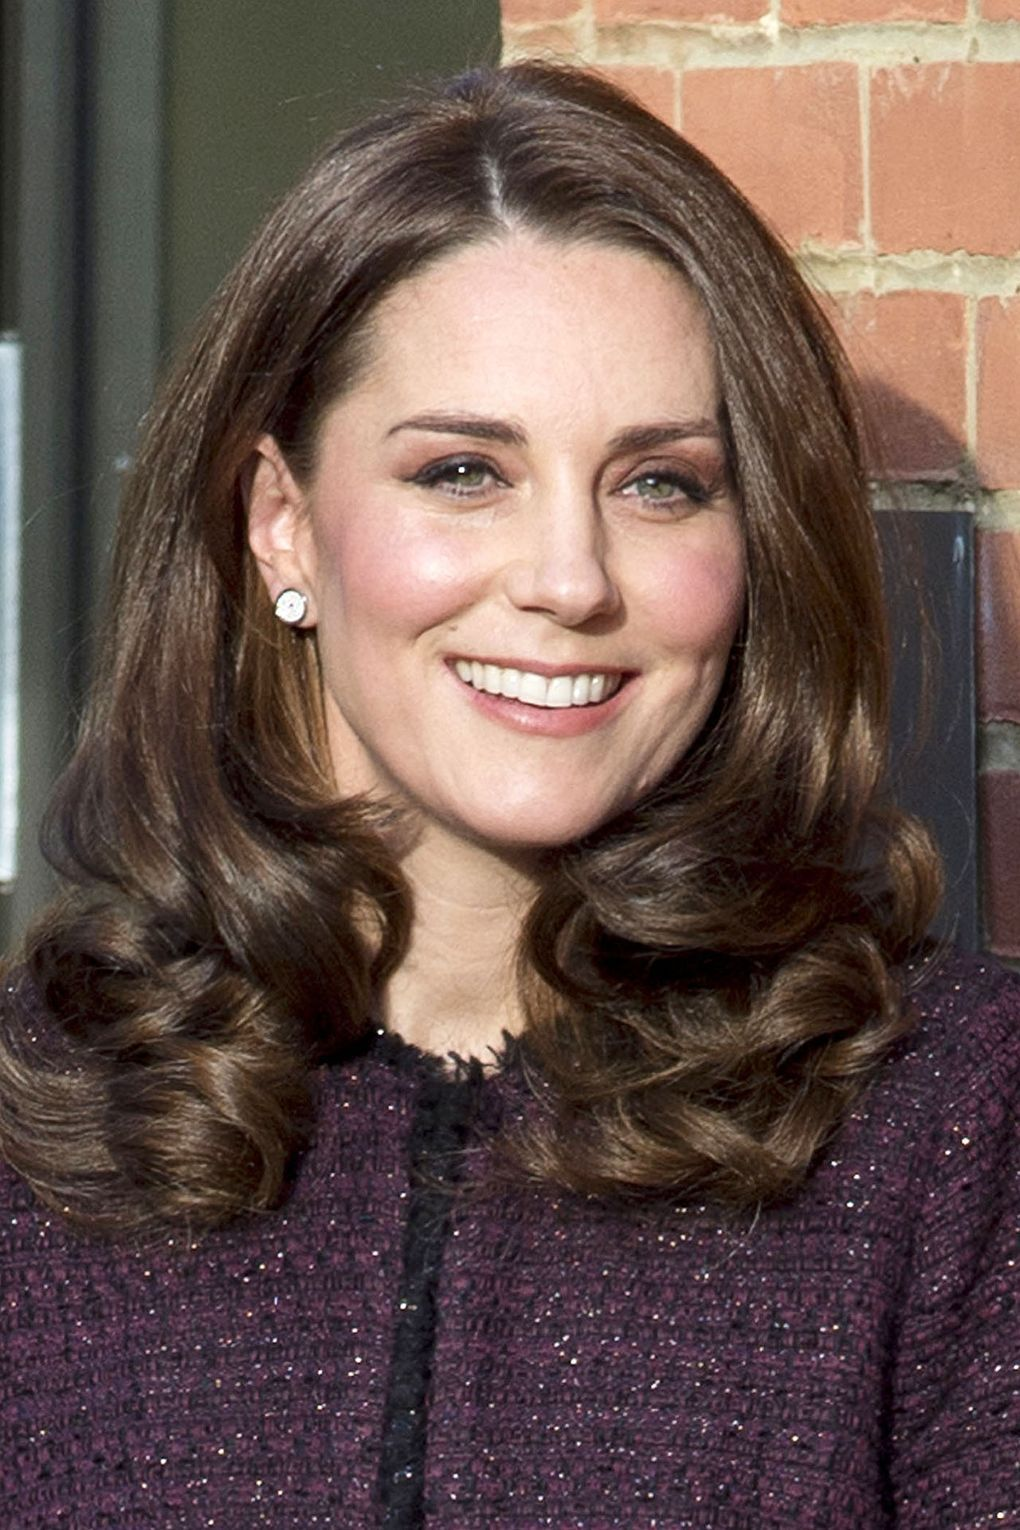 This Is What Kate Middleton S Beauty Look Was Like Before She Joined The Royal Family Kate Middleton Hair Princess Kate Middleton Kate Middleton Makeup